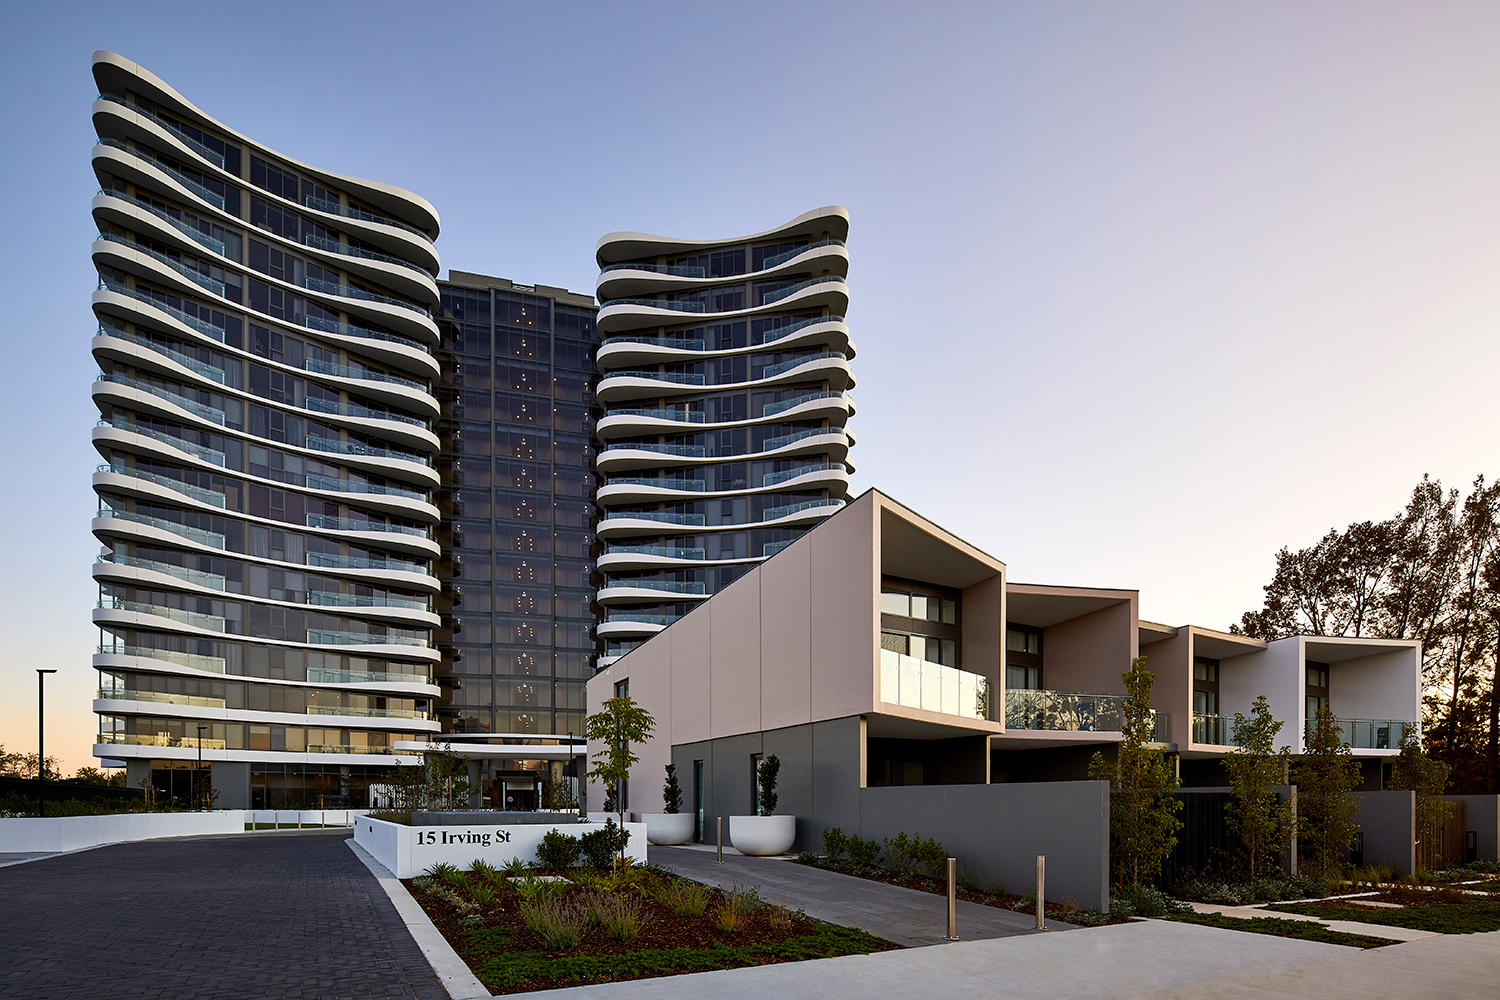 The Ivy Woden - exterior architectural photography of new development in canberra by Canberra photographer